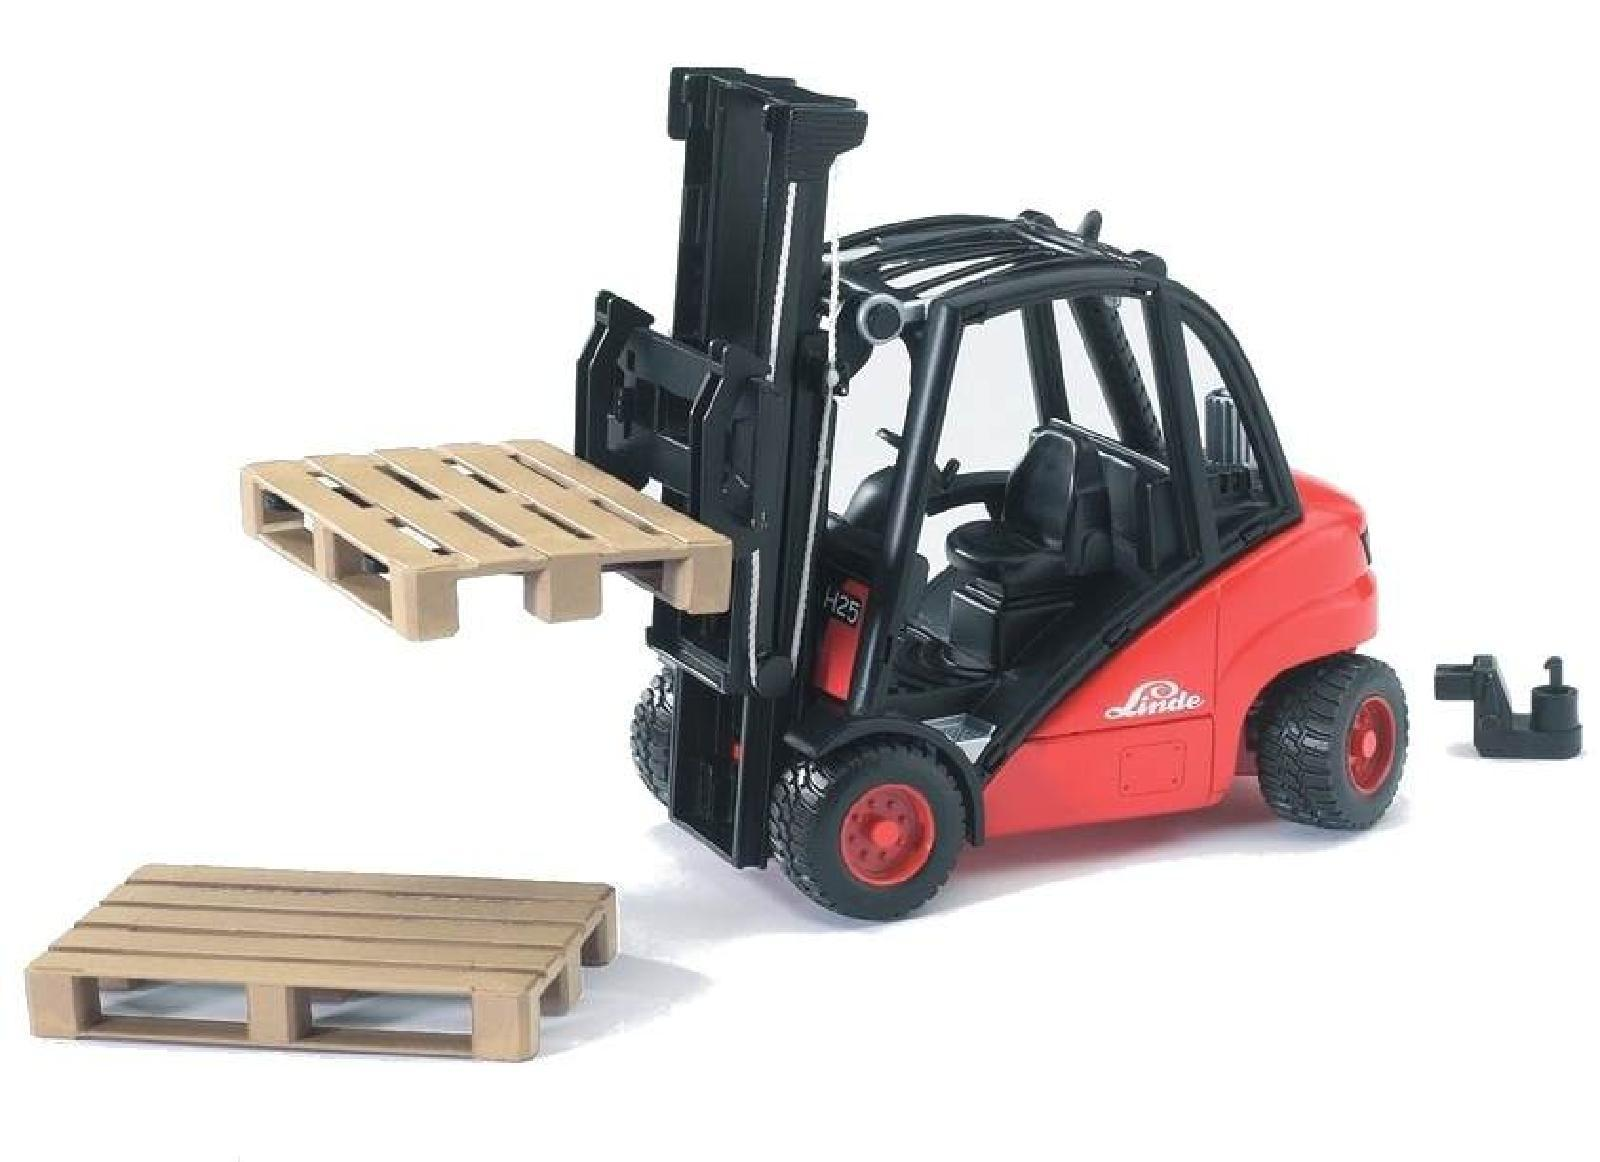 bruder toys 02511 pro series linde h30d forklift inc 2 pallets toy model 1 16 ebay. Black Bedroom Furniture Sets. Home Design Ideas